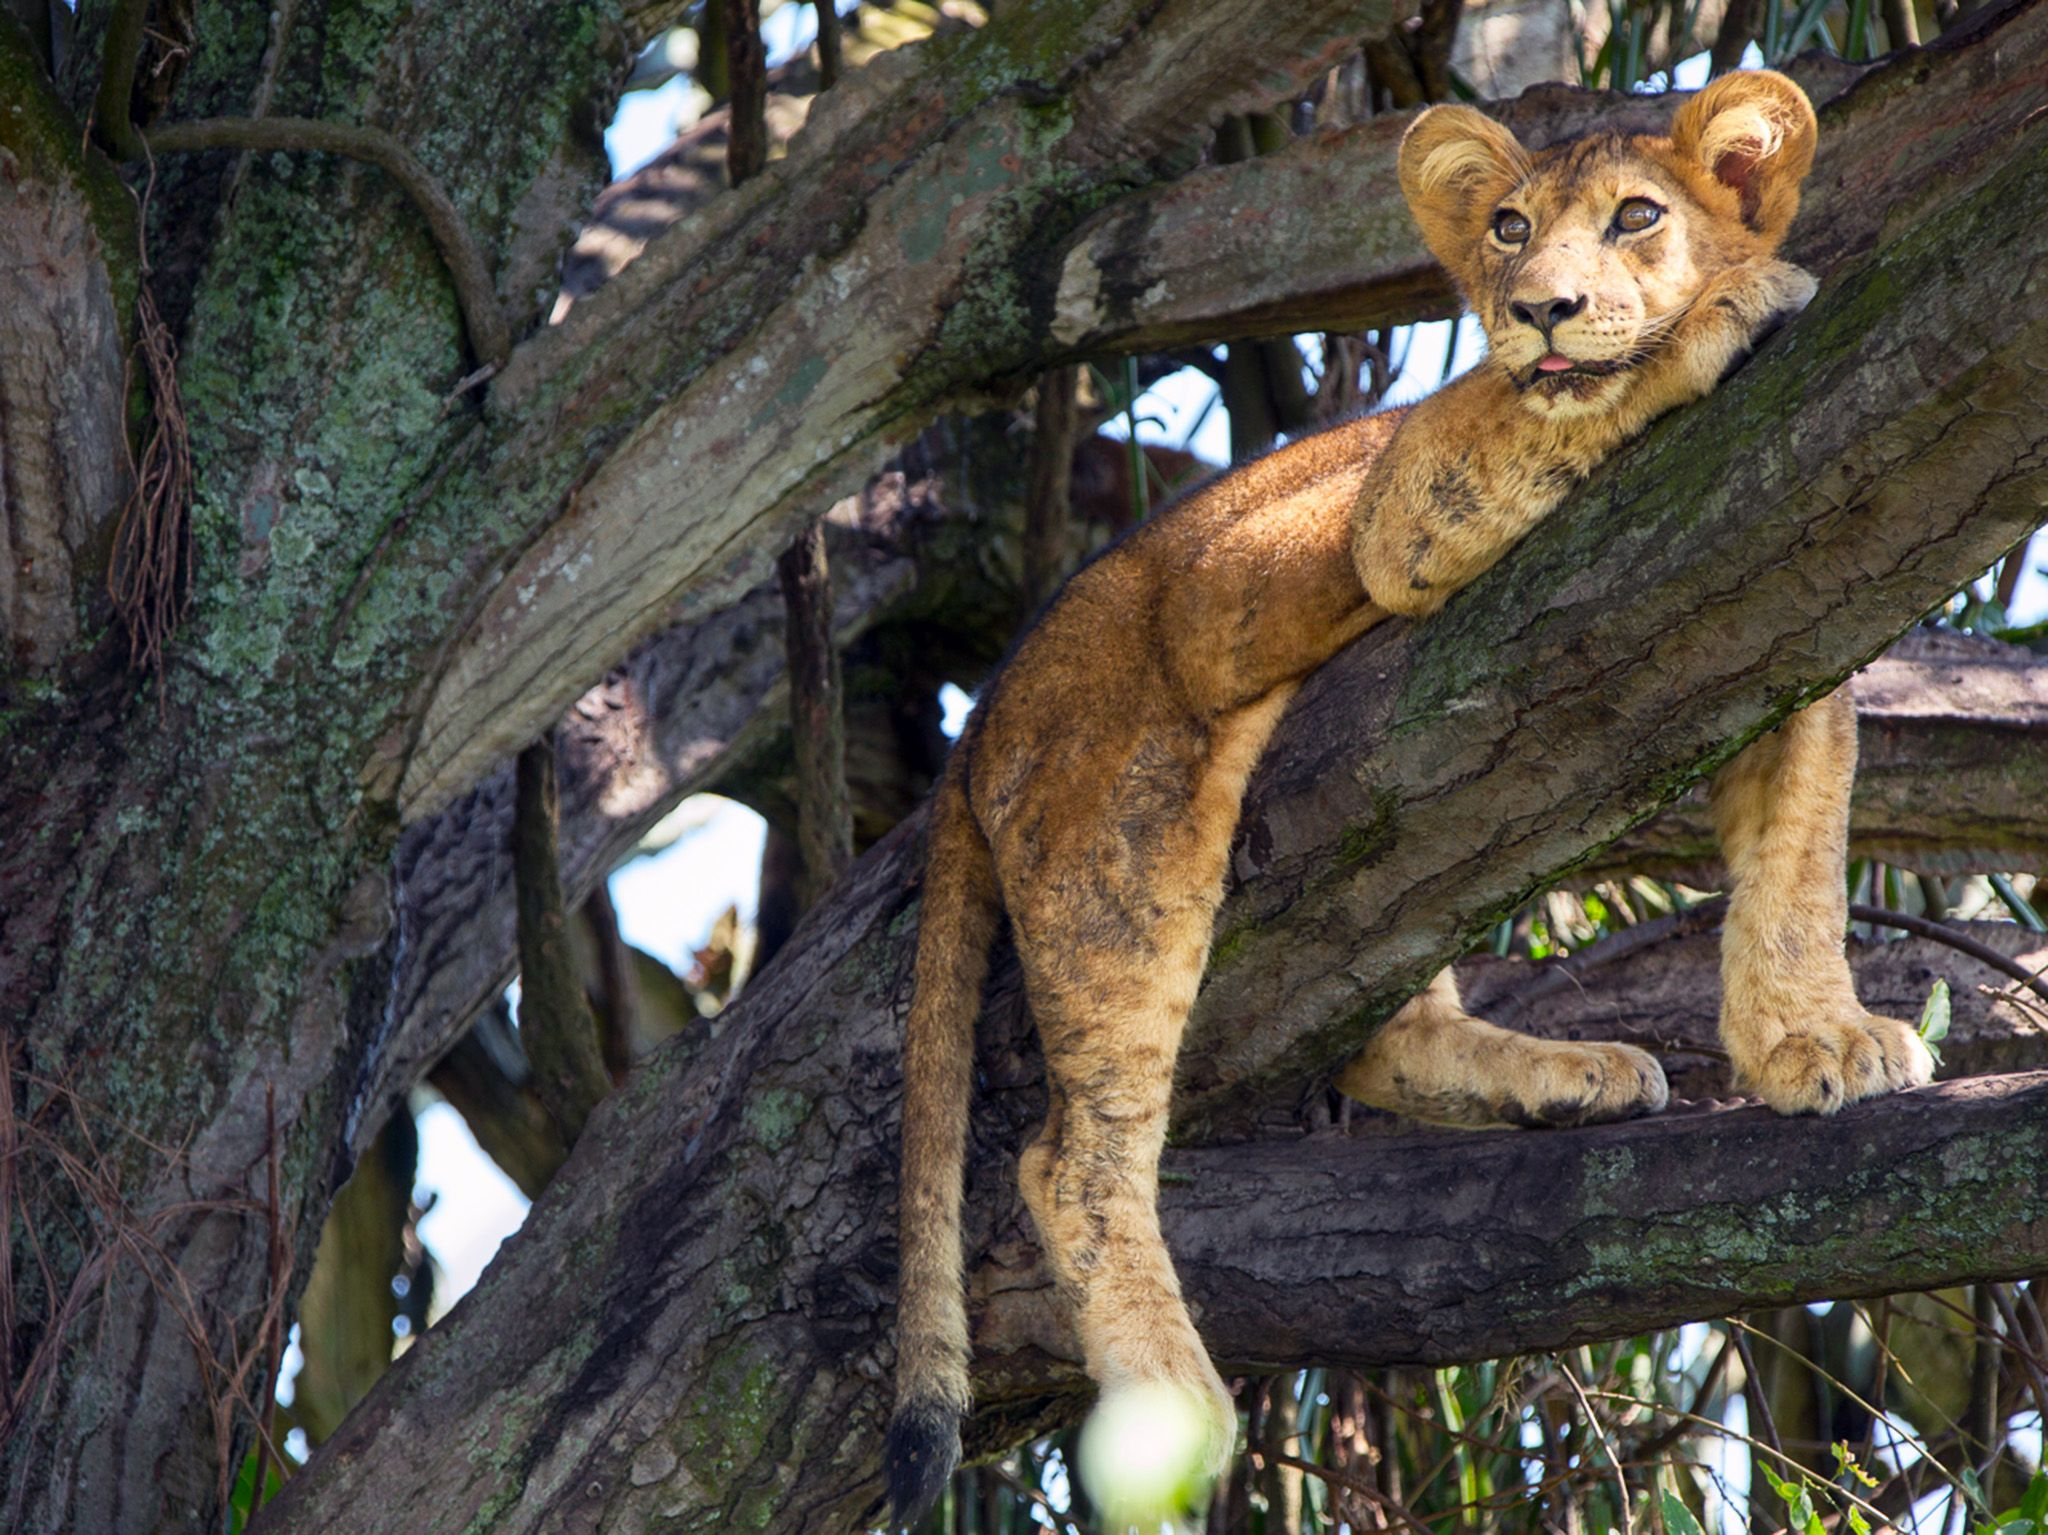 One lion cub lounging in tree with tongue partially sticking out. This image is from Tree... [Photo of the day - October 2020]